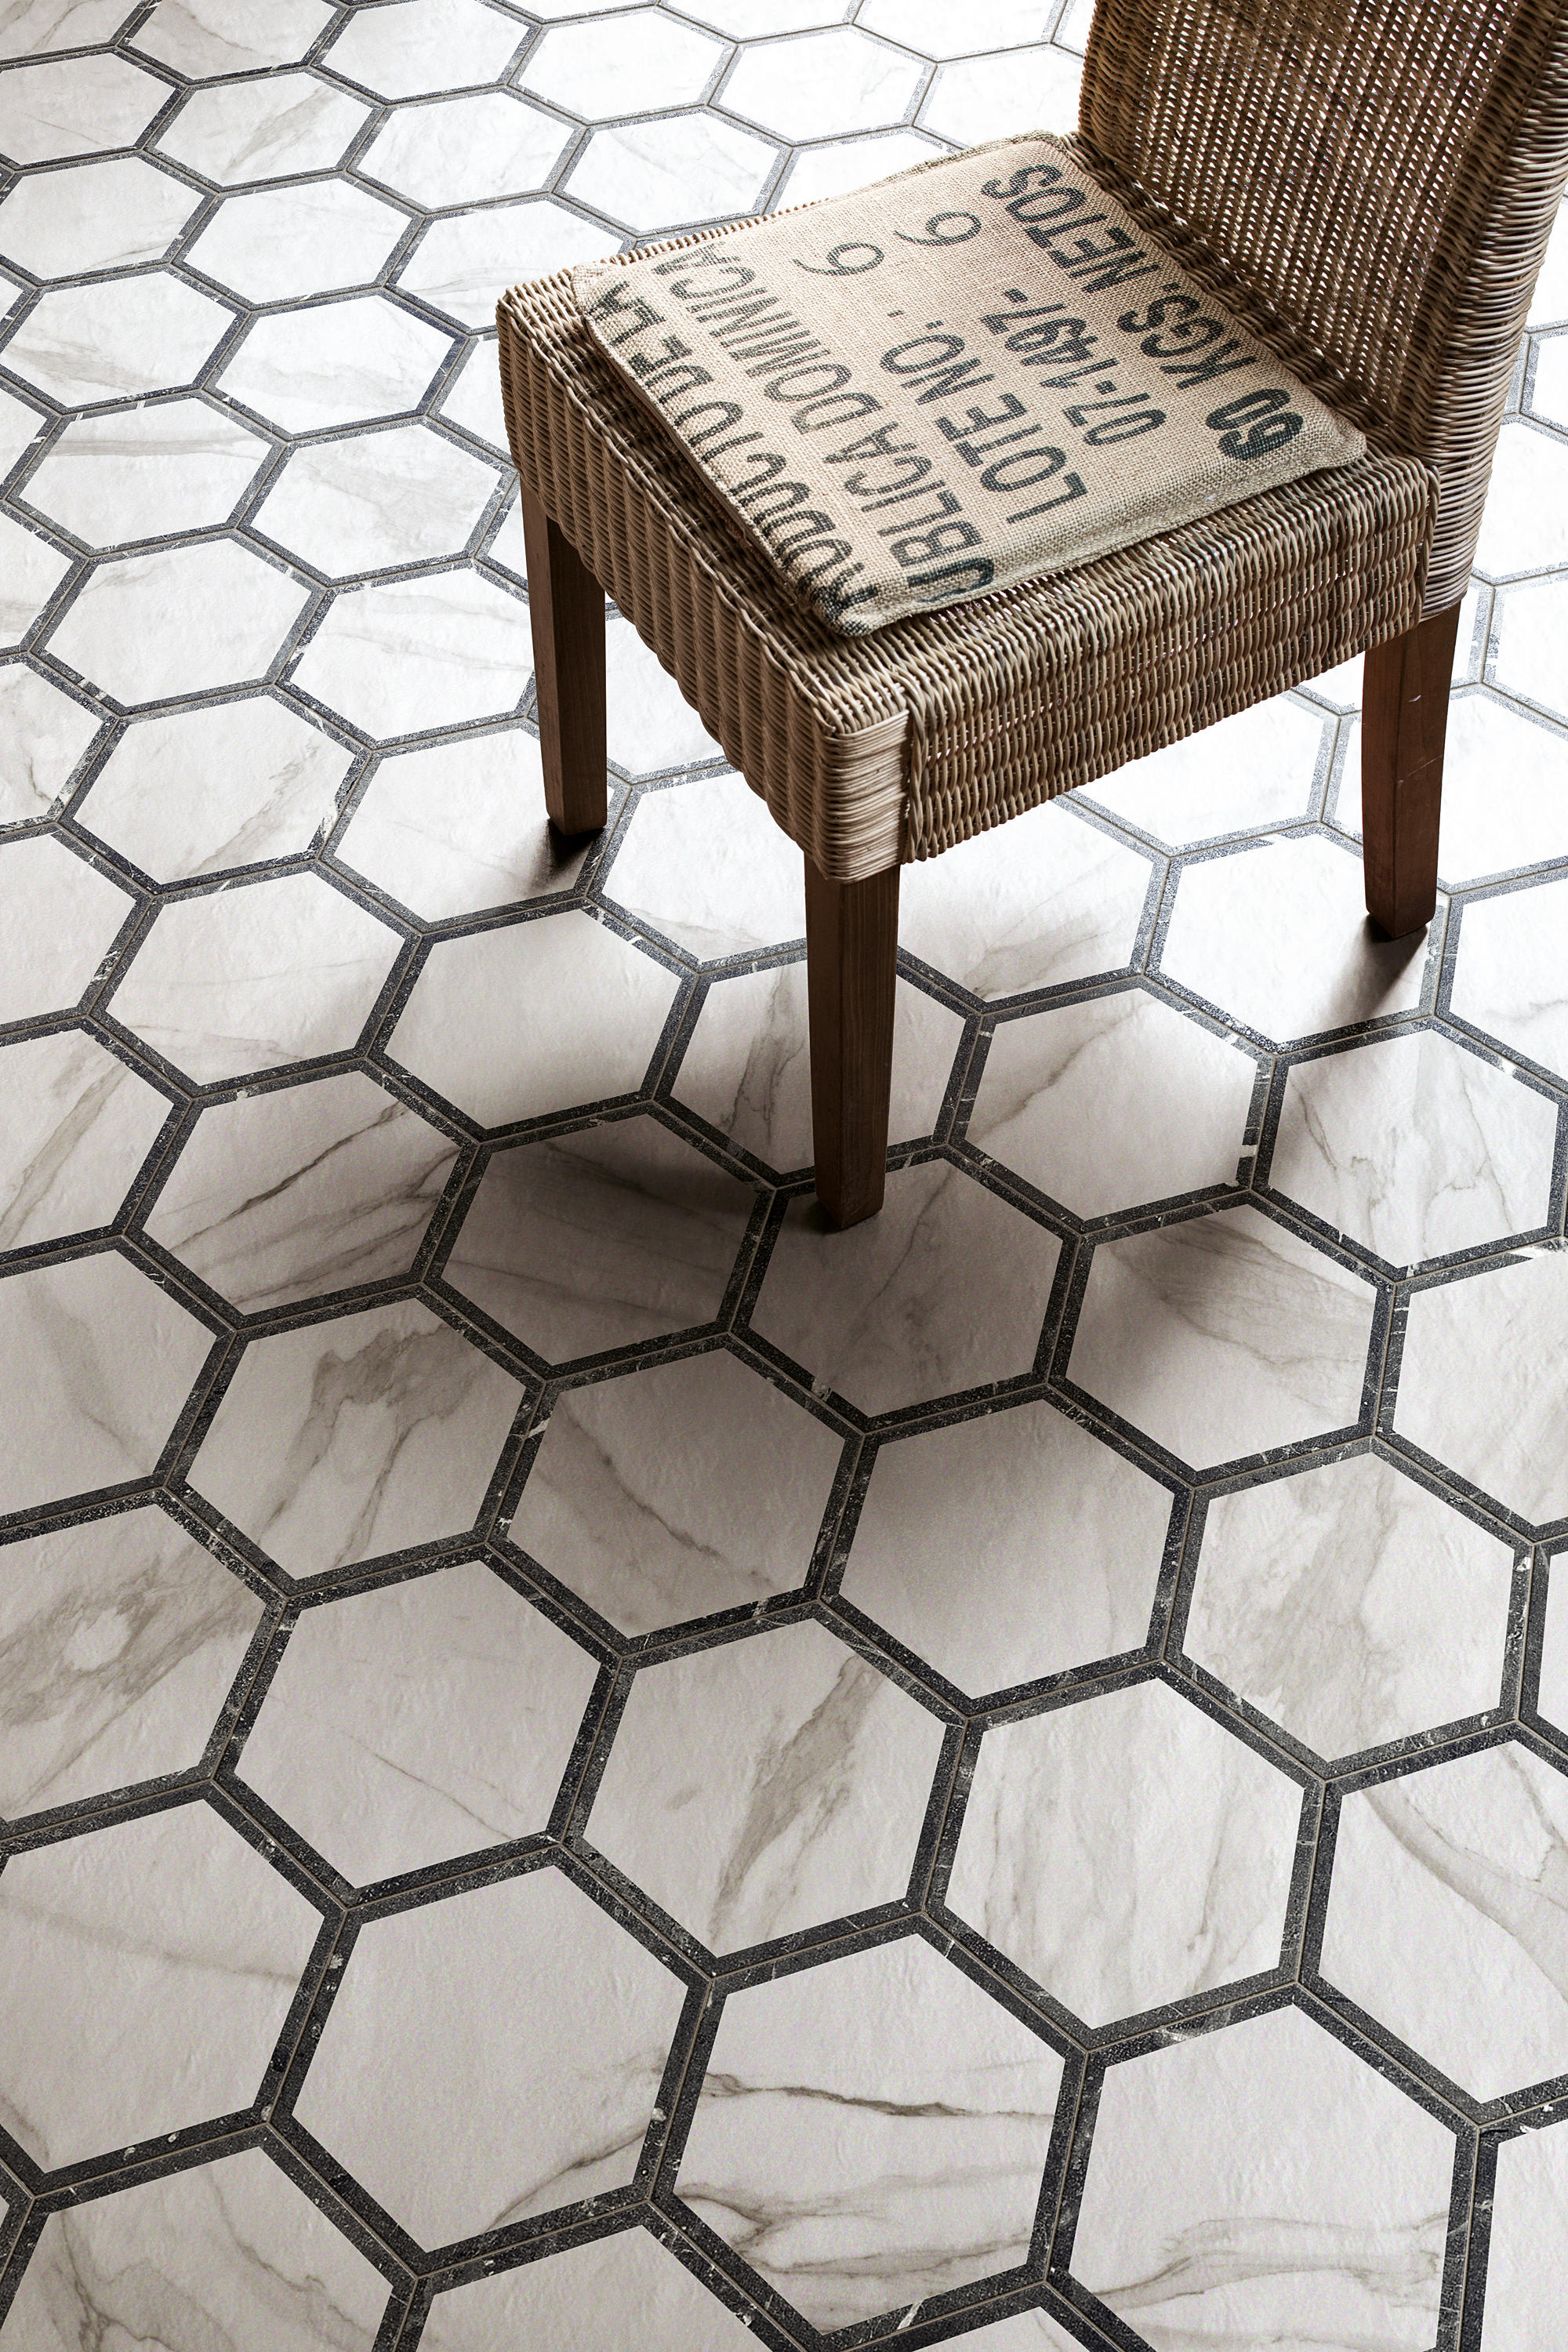 Roma Statuario Ceramic Tiles From Fap Ceramiche Architonic